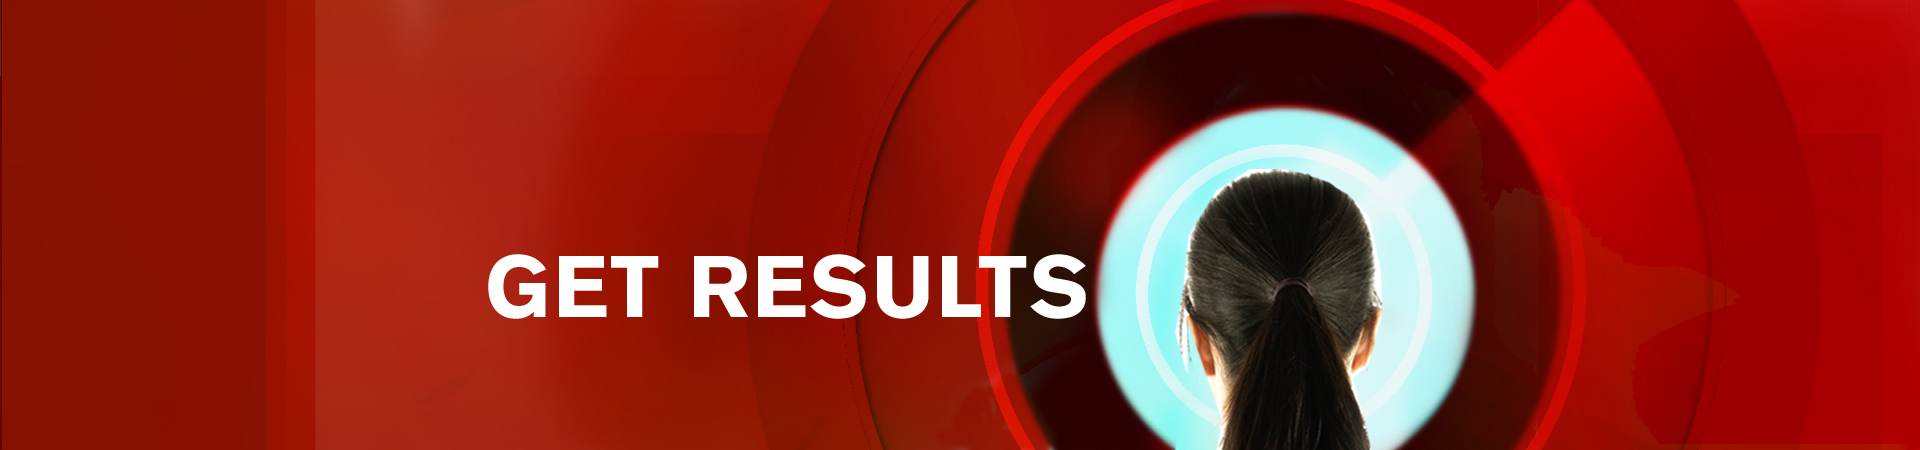 Get Results graphic red 4